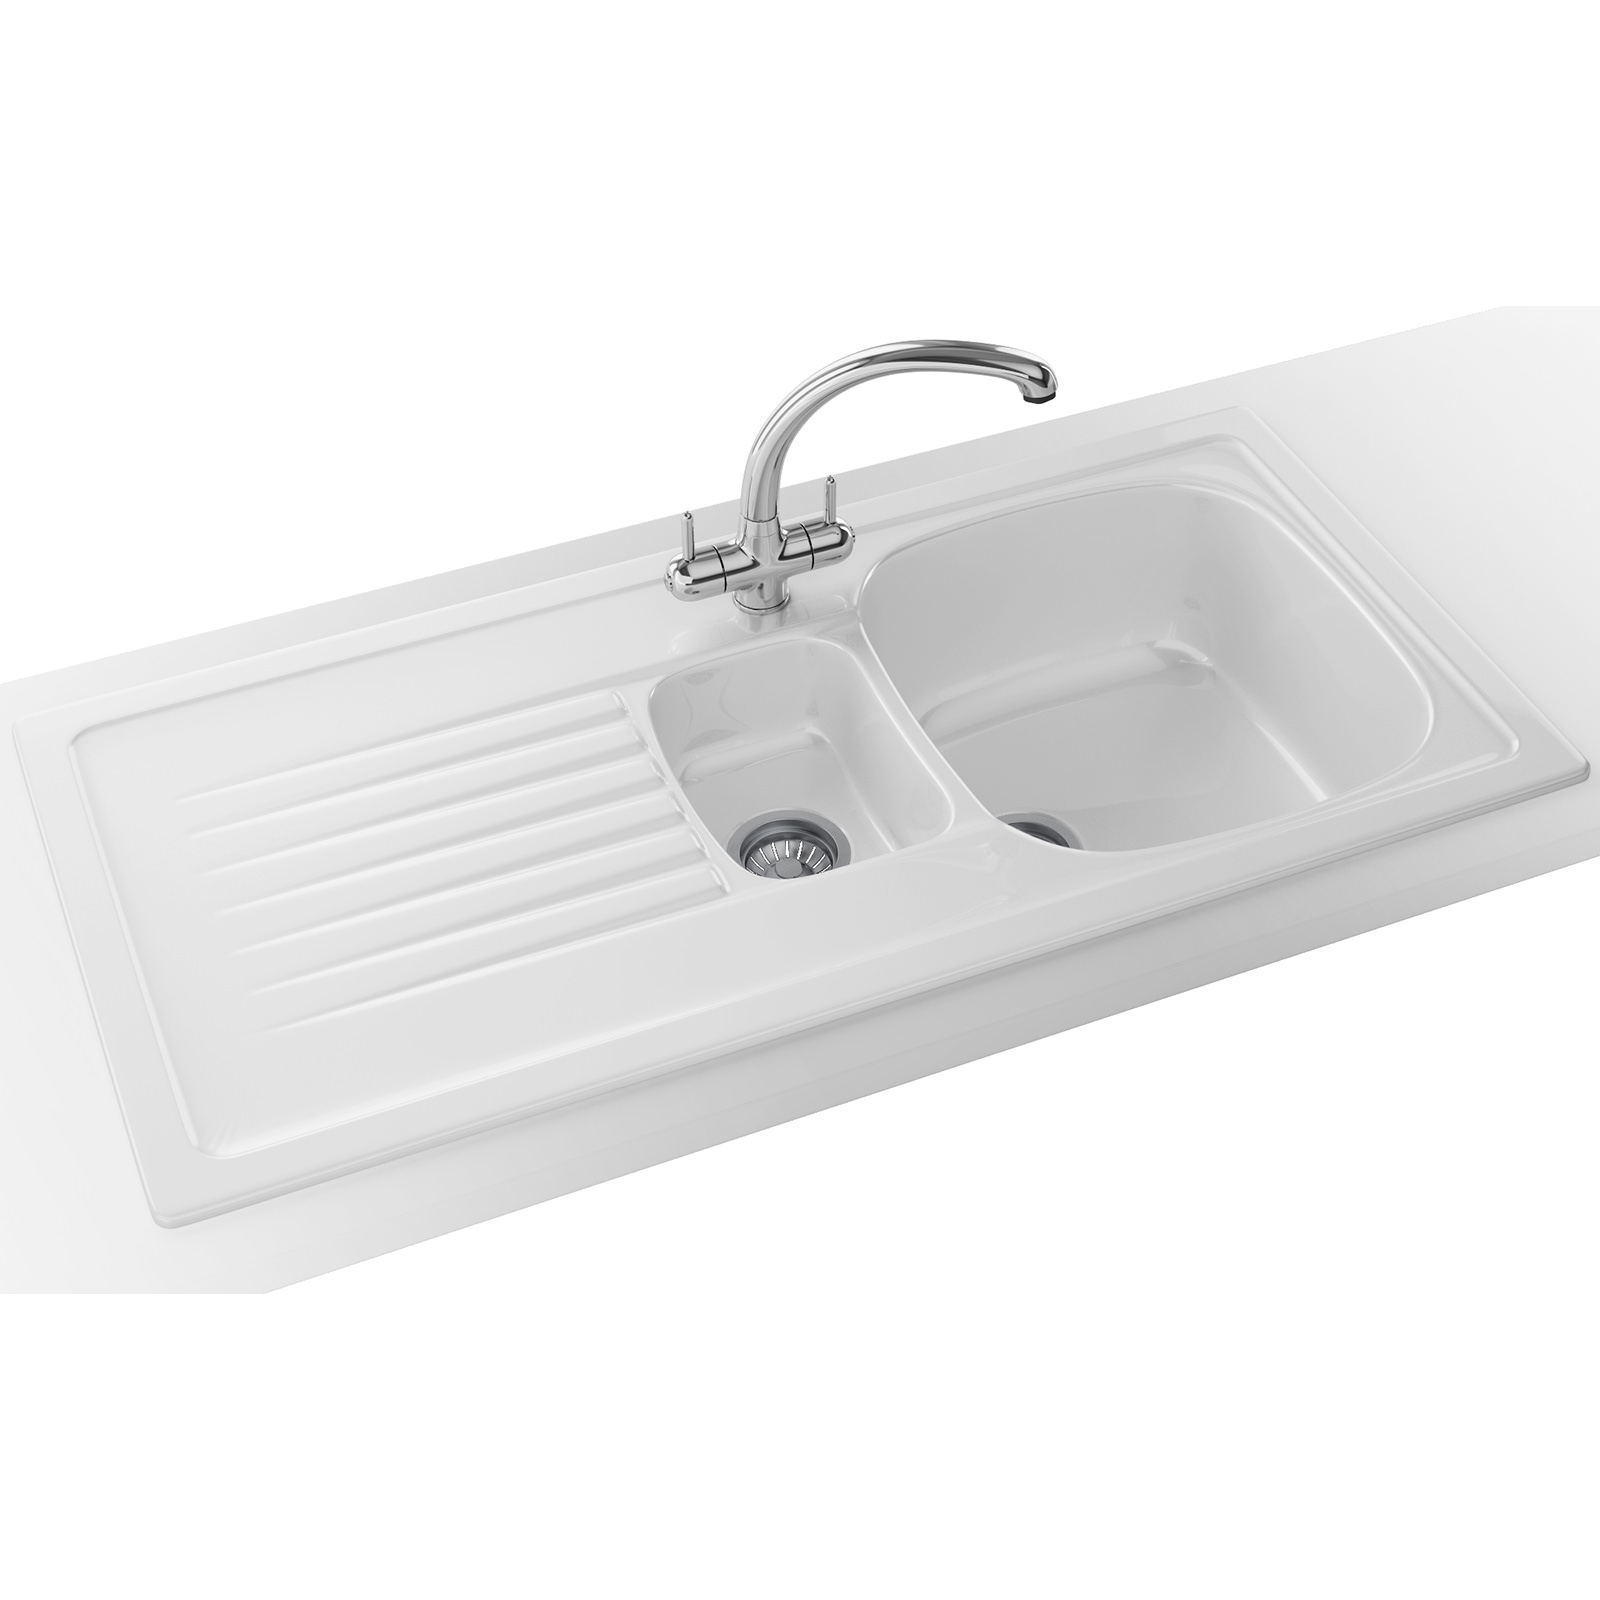 Franke Elba ELK 651 Ceramic 1.5 Bowl White Kitchen Inset Sink